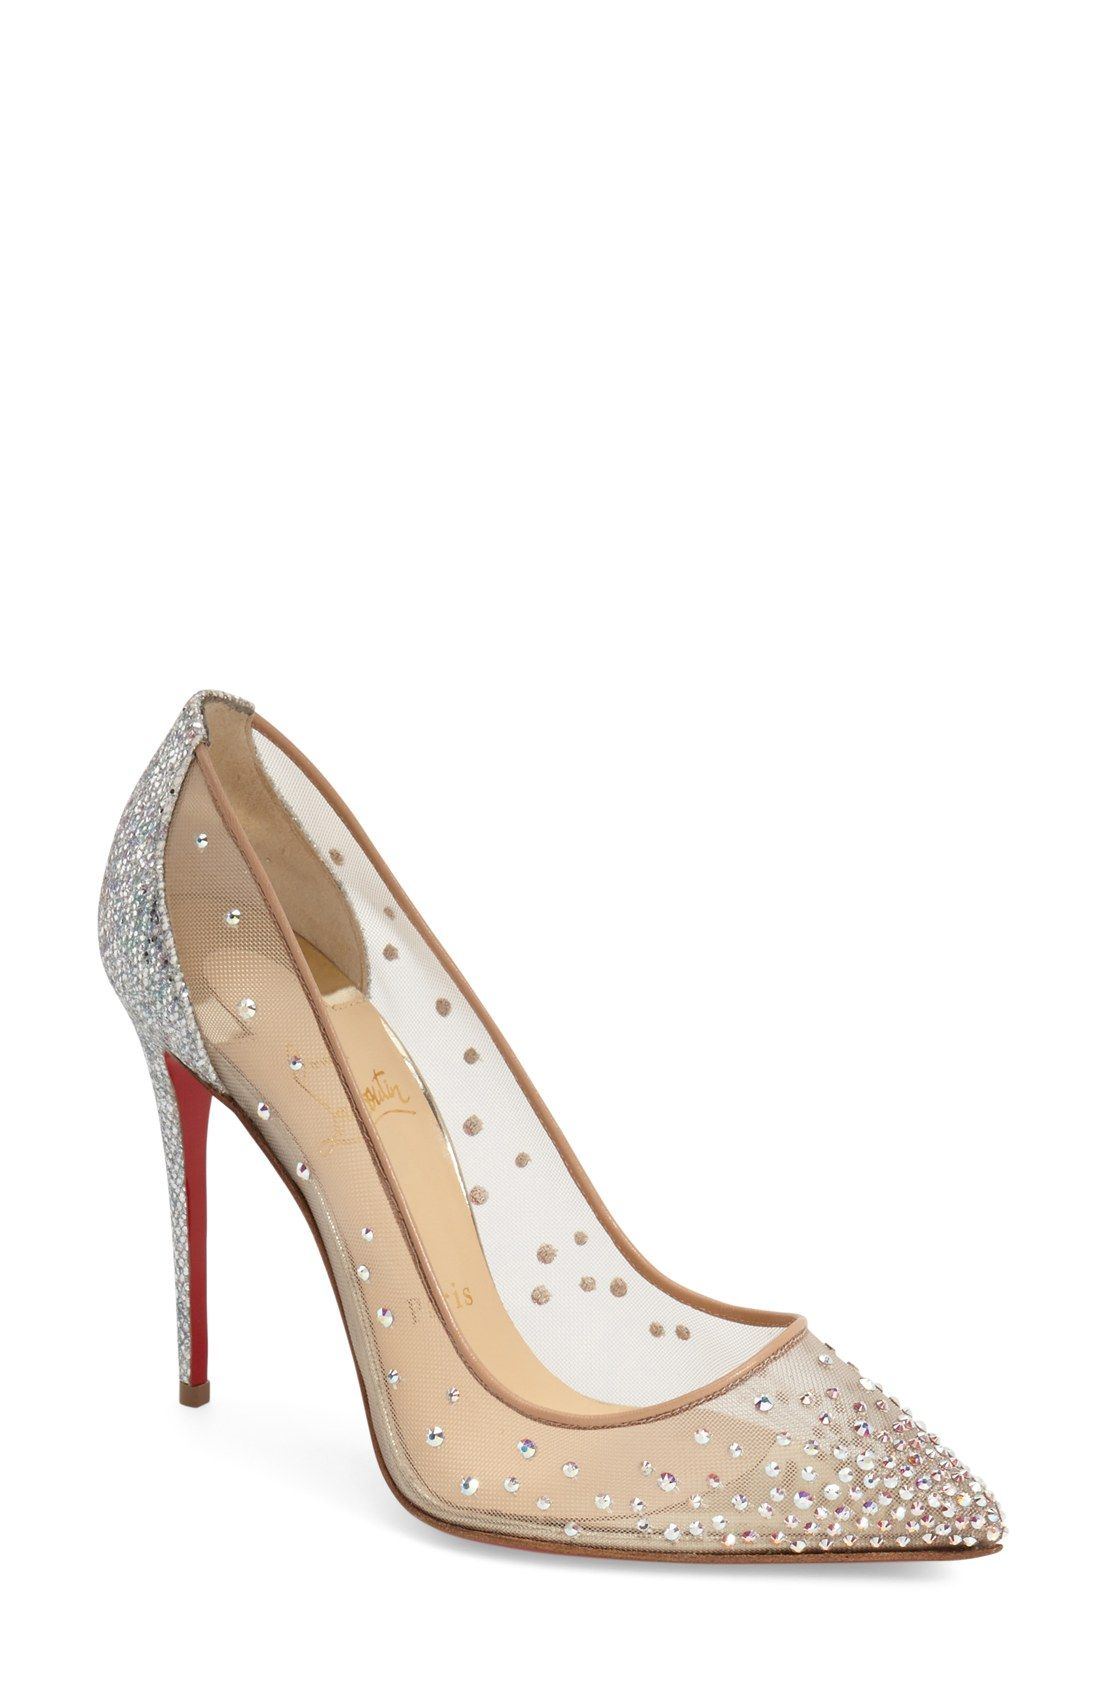 0ebcd32f29c Christian Louboutin  Follies Strass  Pointy Toe Pump